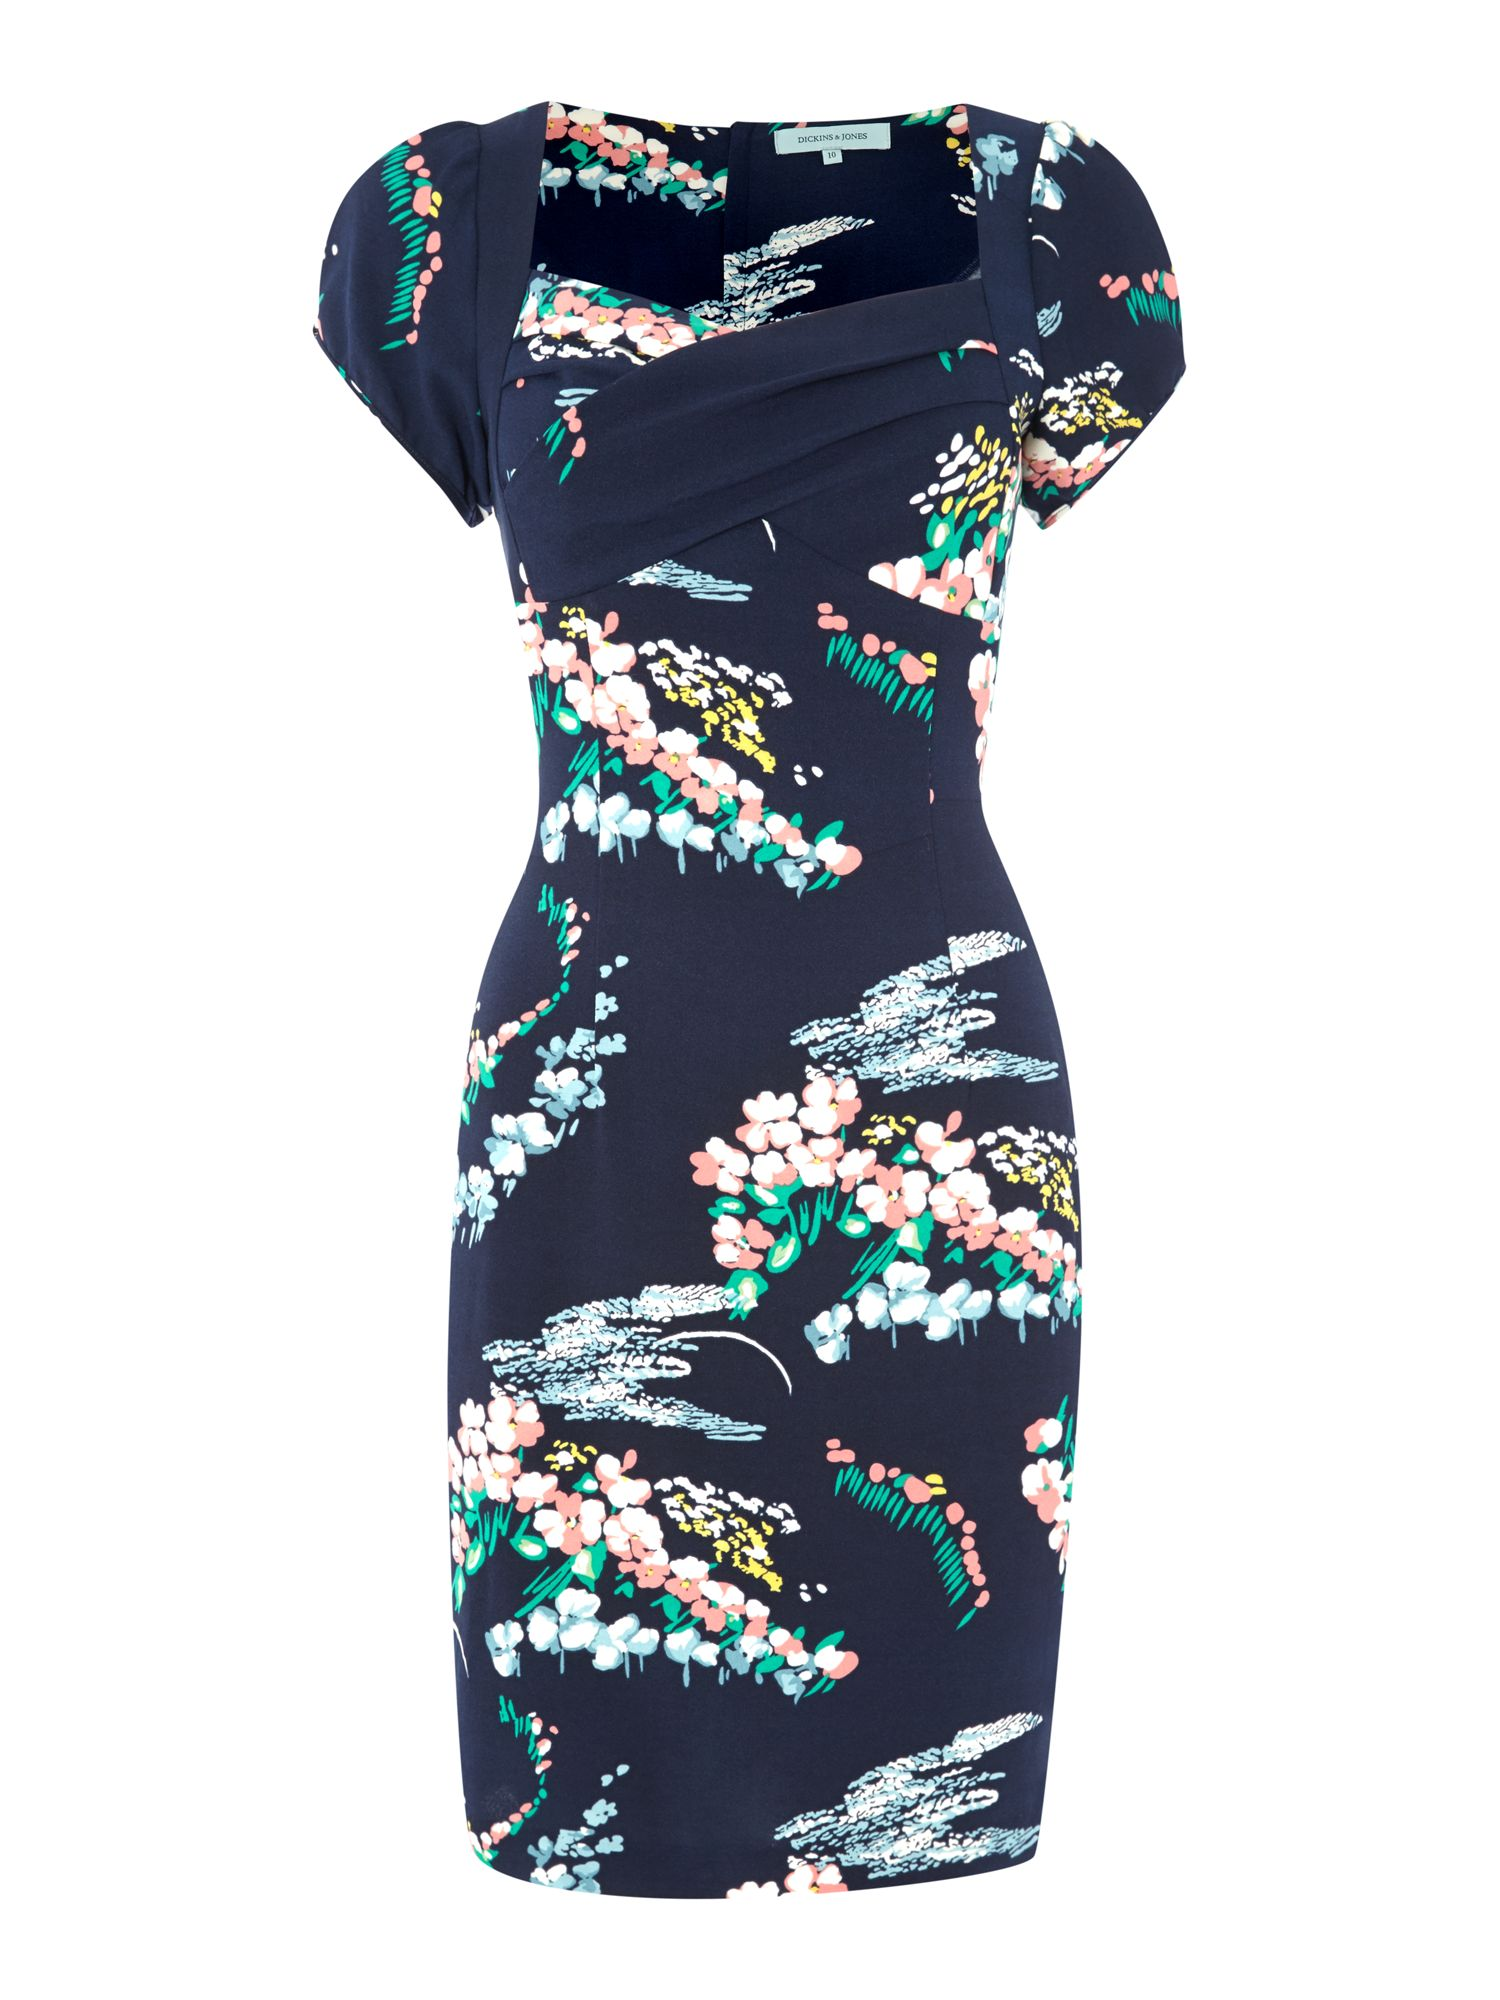 Ladies wisteria floral print dress